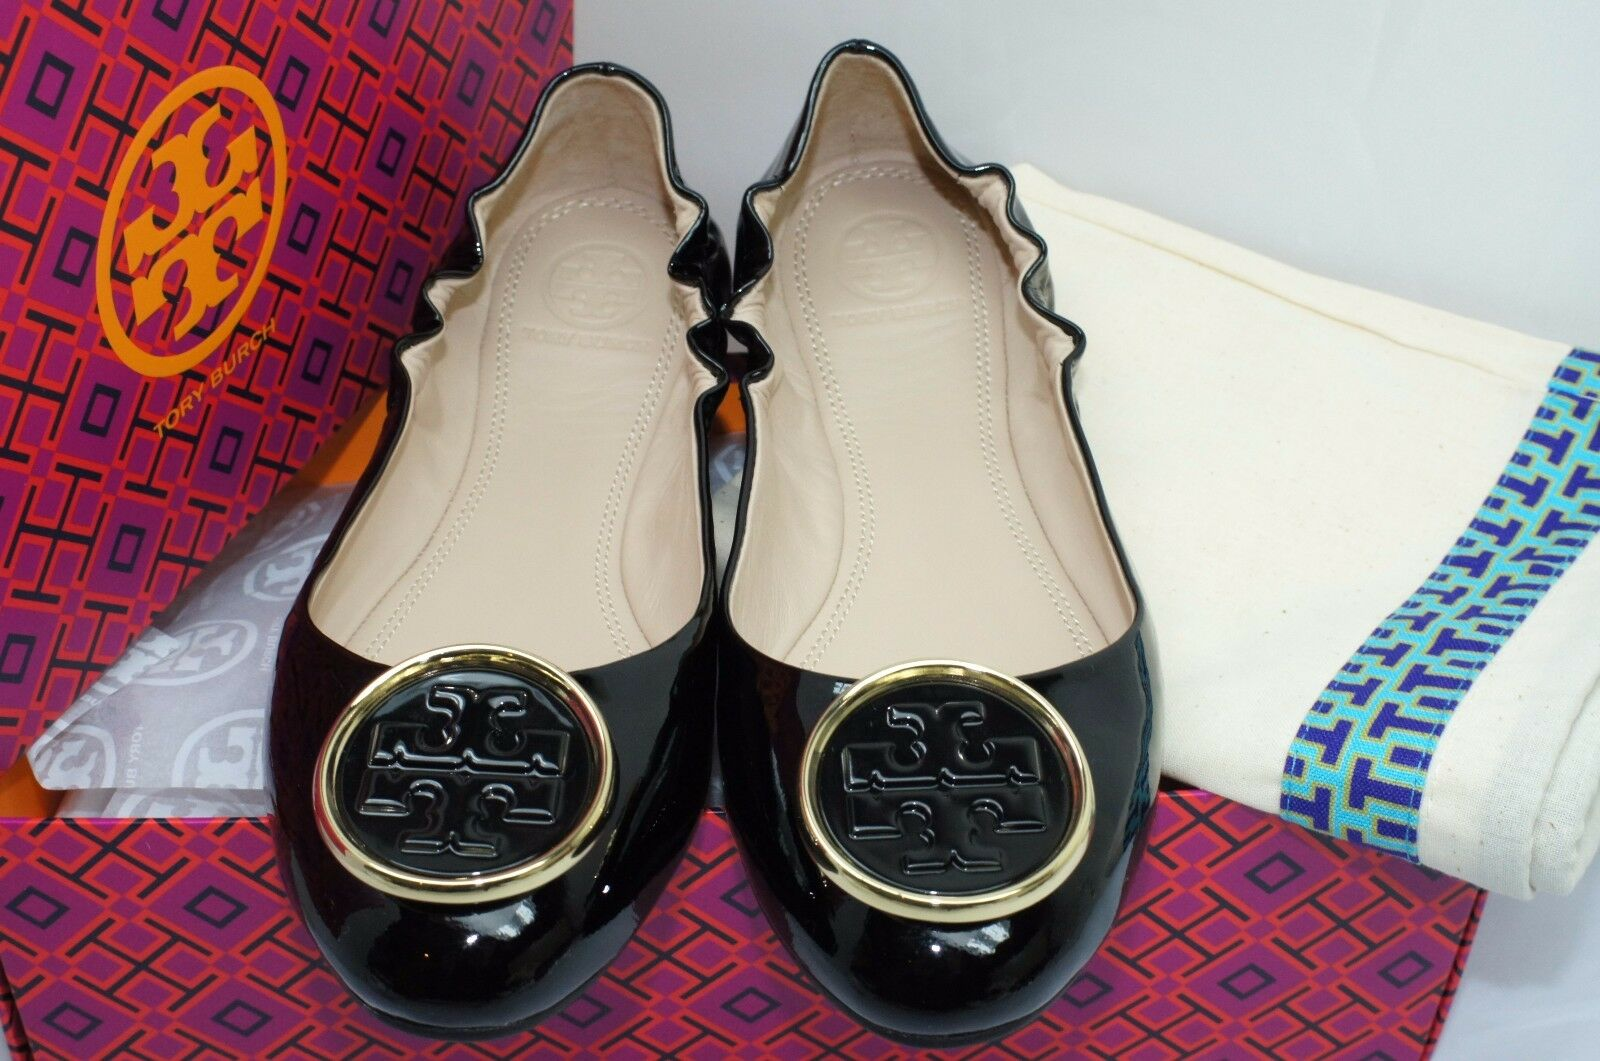 New Tory Tory Tory Burch Black shoes Twiggie Ballet Flats Size 7 Leather Sale Gift f573b5